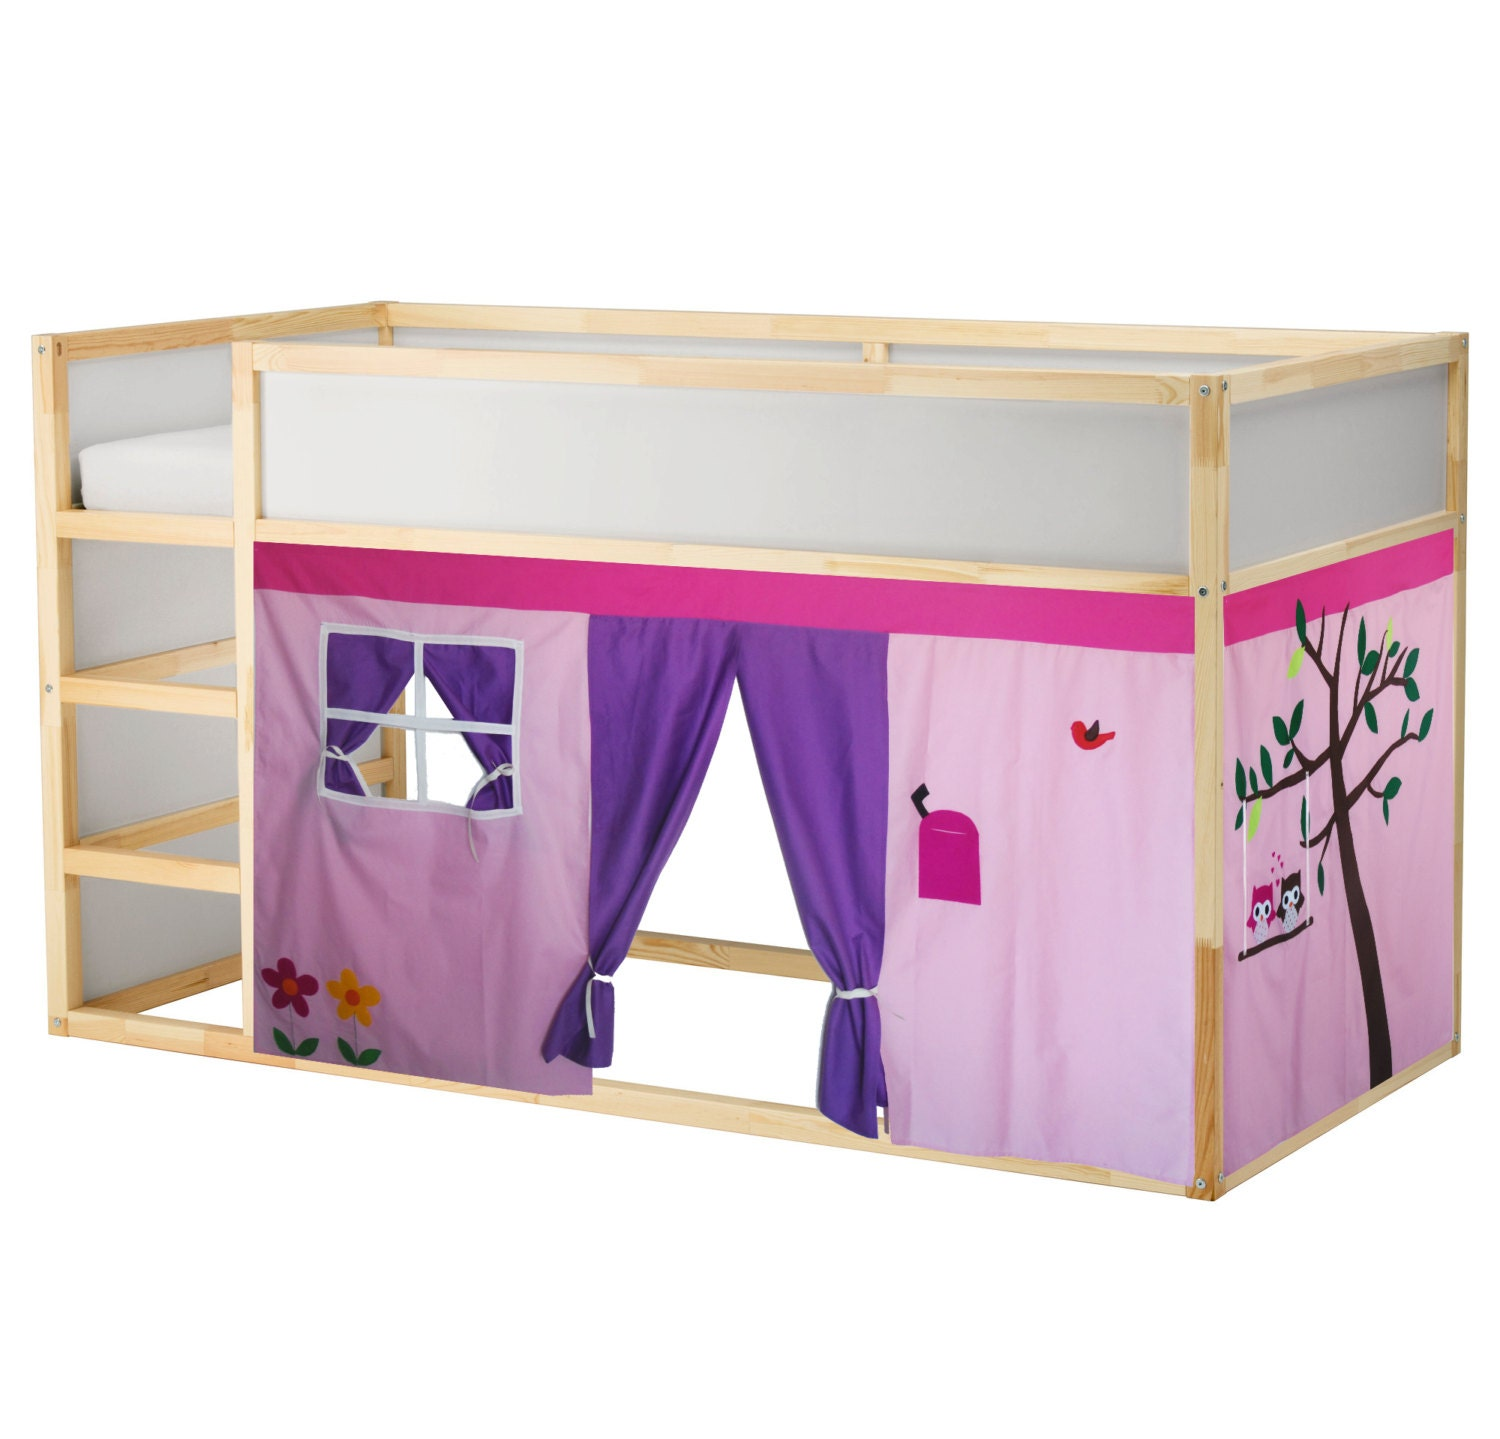 Owl Bed Playhouse Bed Tent Loft Bed By Creativeplayshop